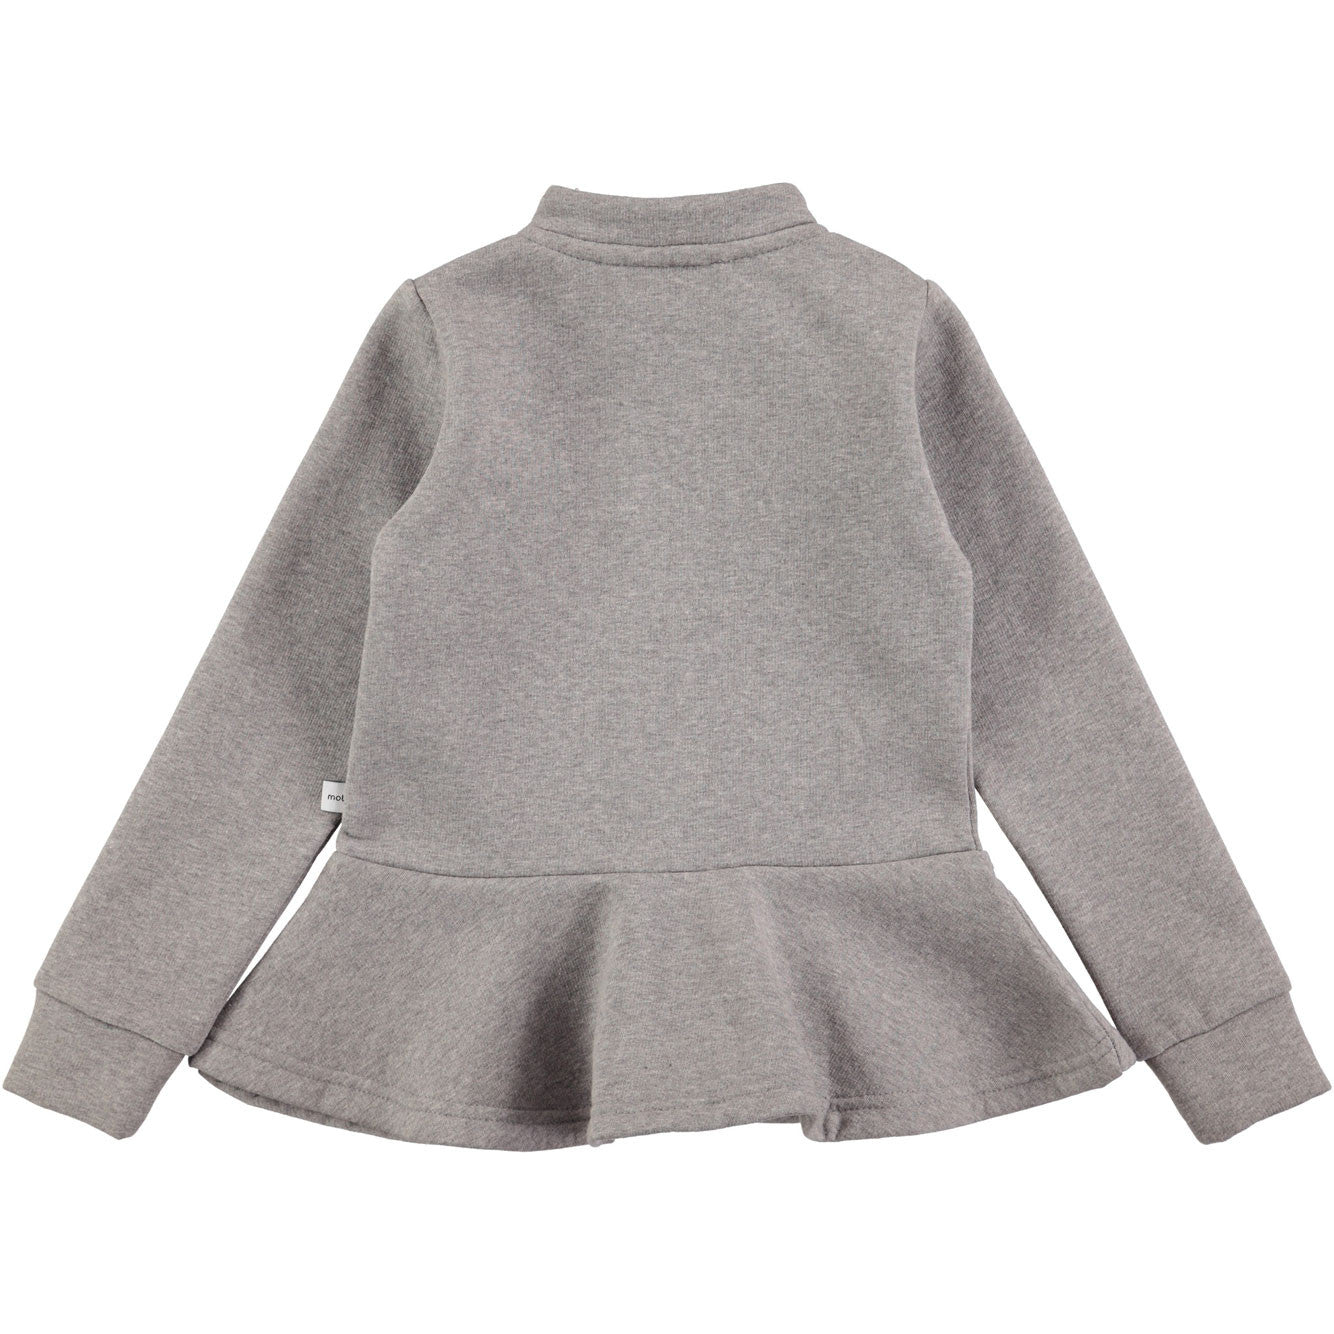 Molo Grey Haili Sweatshirt - Ladida